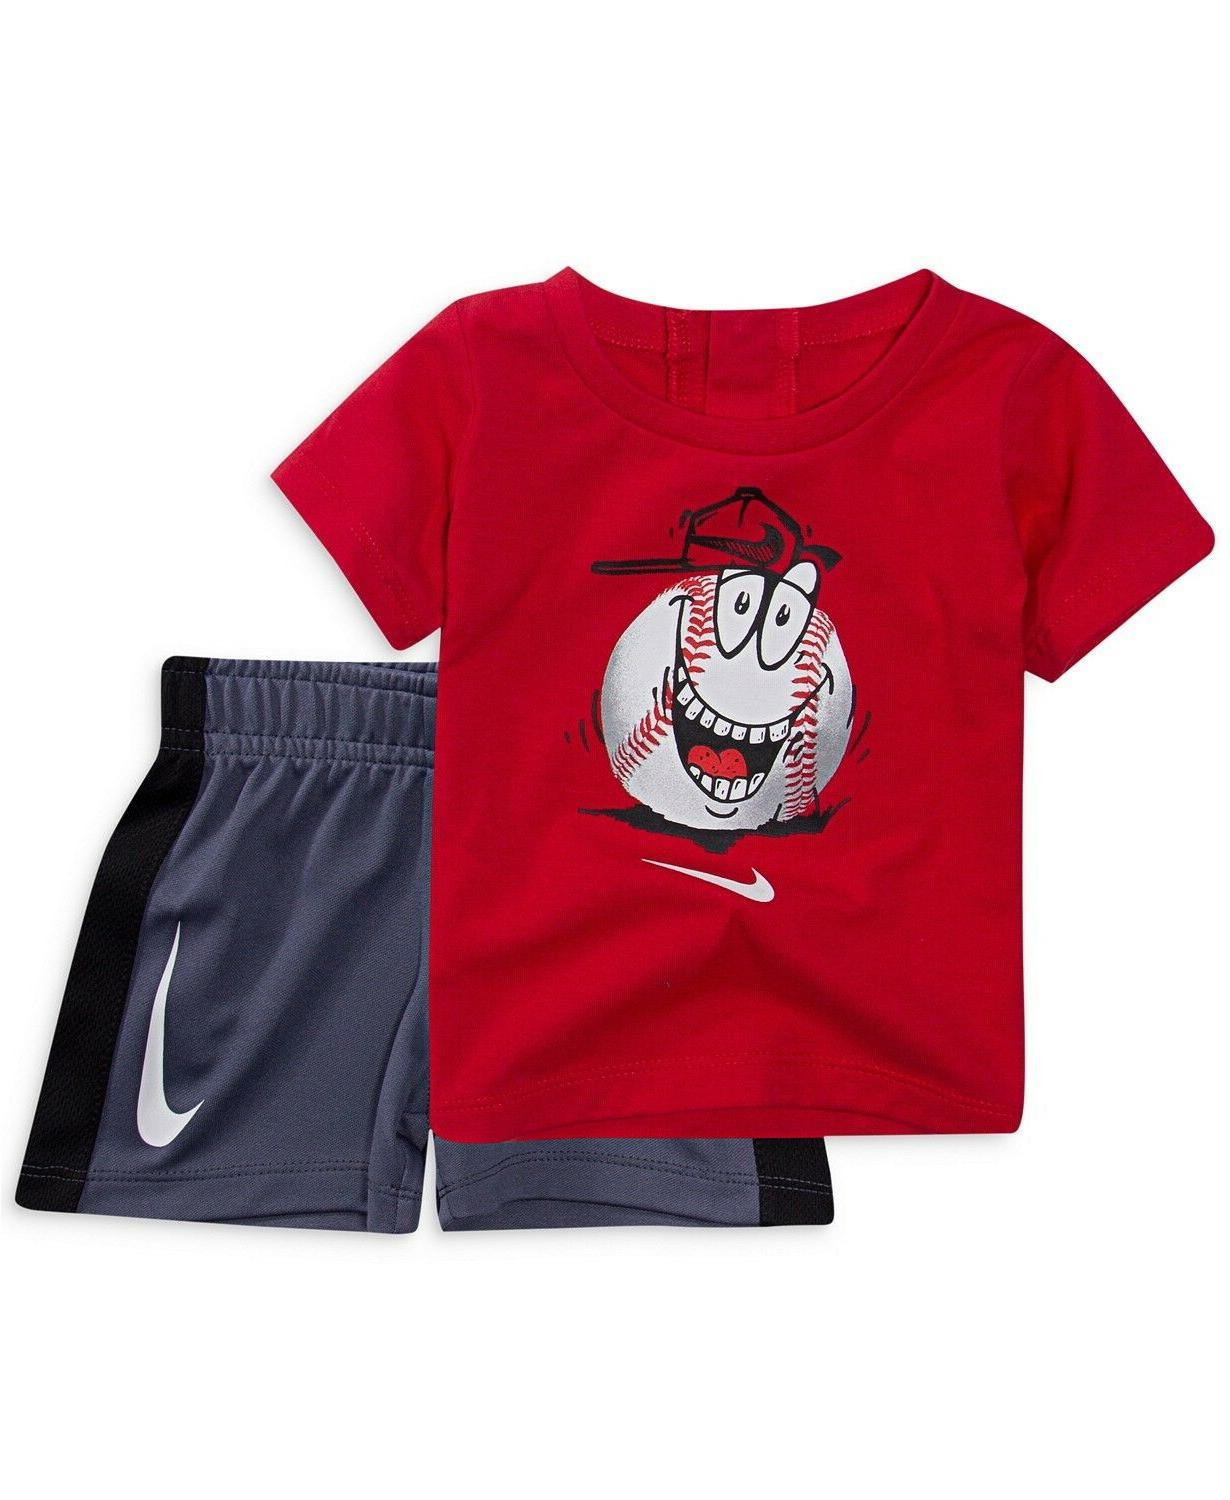 New Nike Graphic Print Shorts Size and Color